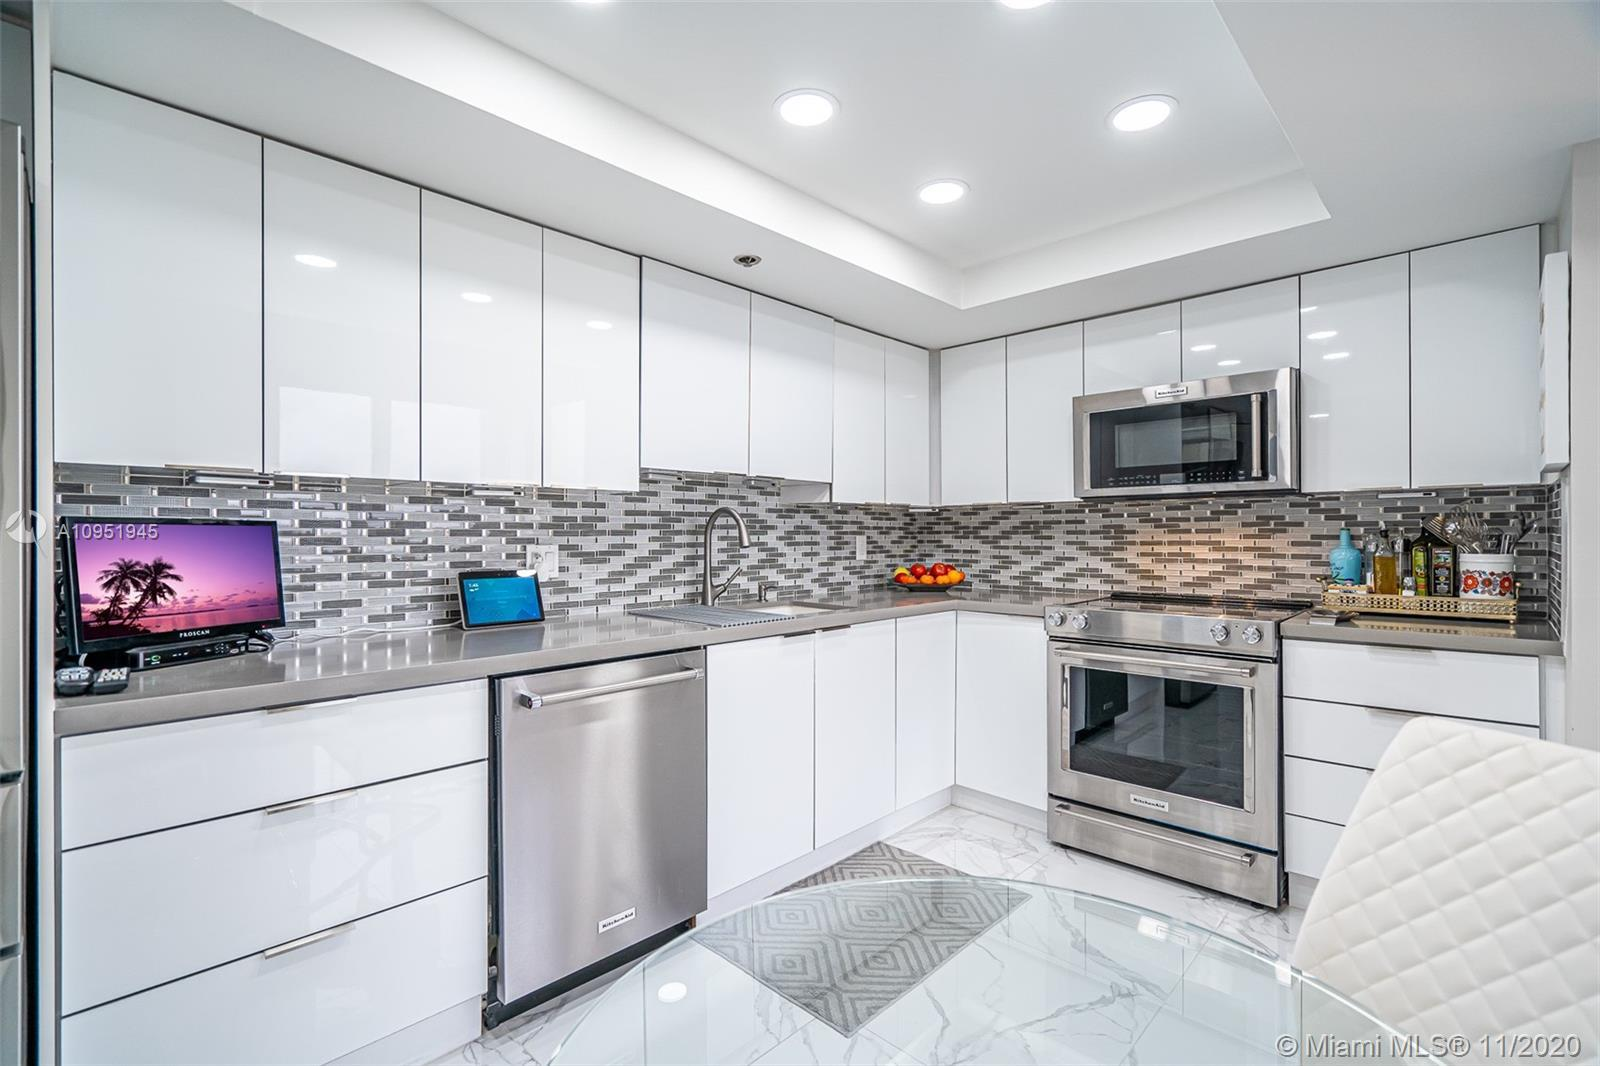 STUNNING CORNER PENTHOUSE CONDO COMPLETELY RENOVATED! CONTEMPORARY STYLE 8TH FLOOR UNIT IN IN MID-RI